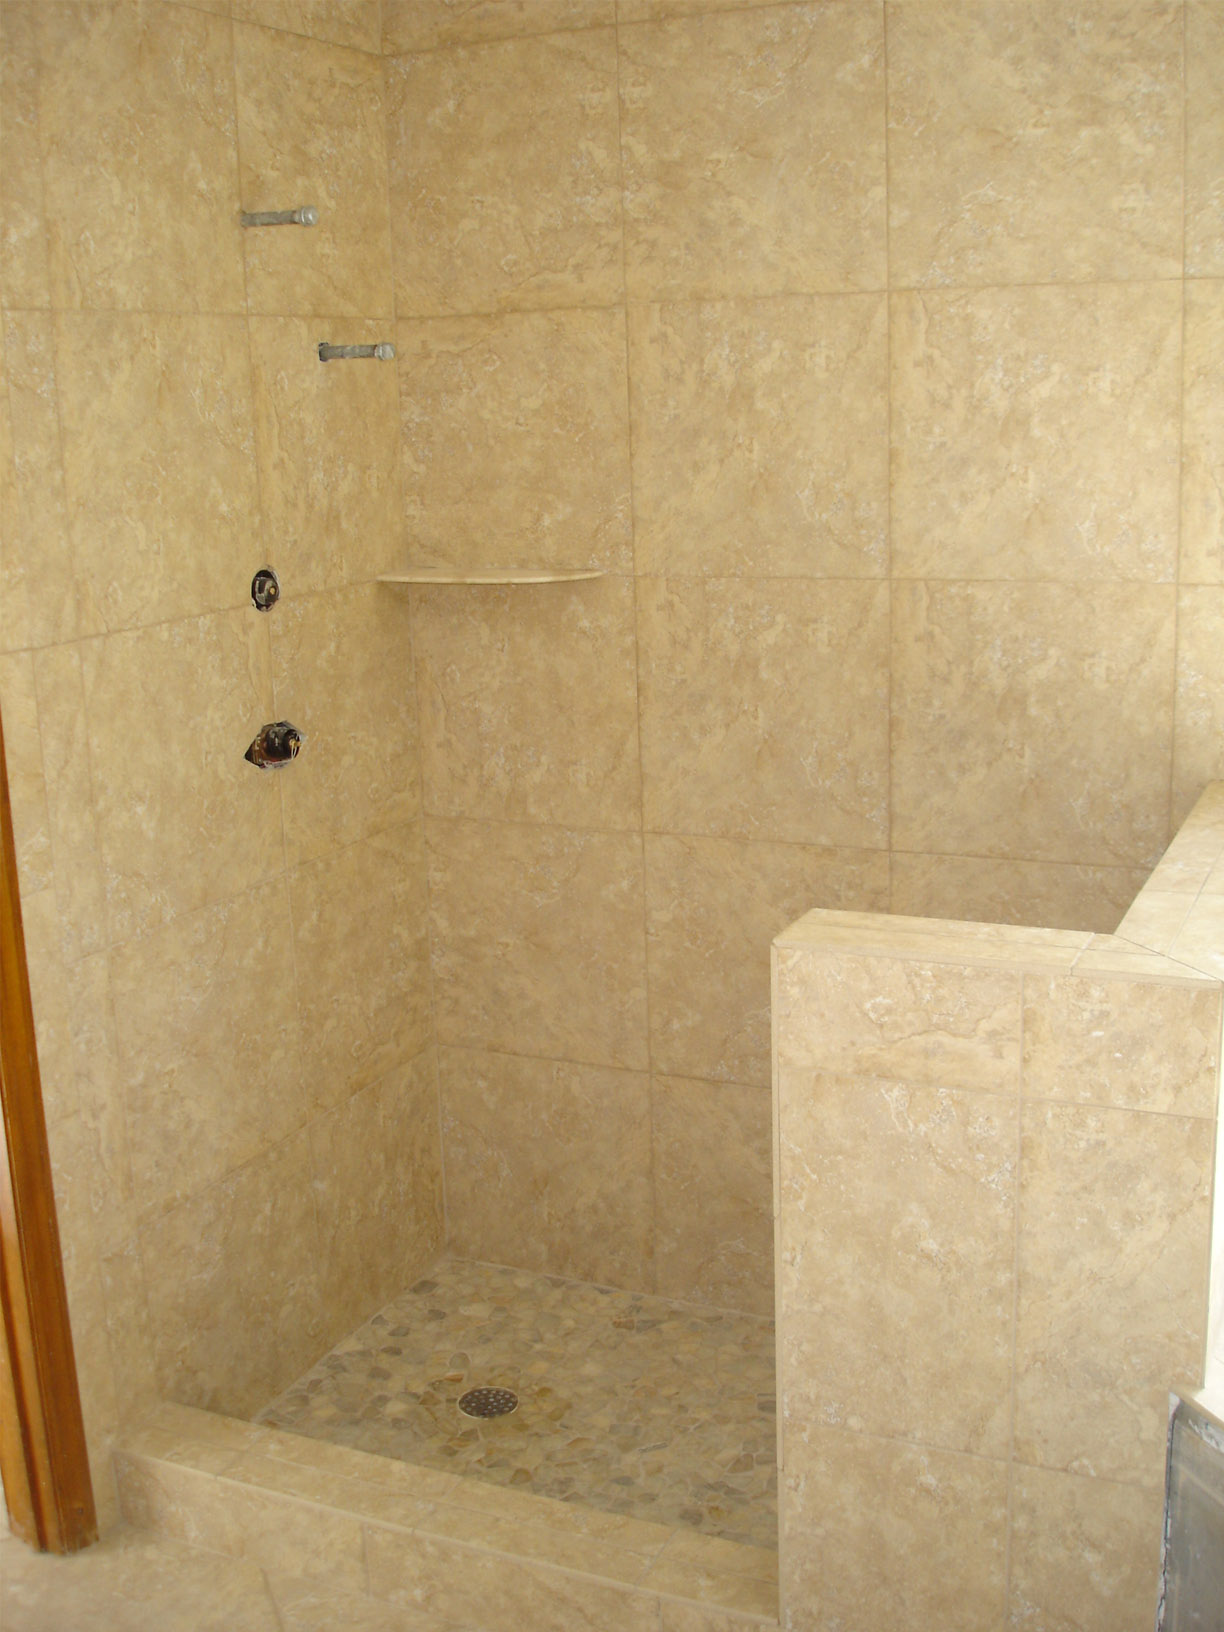 Shower Floor Tiles Which Why And How: 26 Amazing Pictures Of Ceramic Or Porcelain Tile For Shower